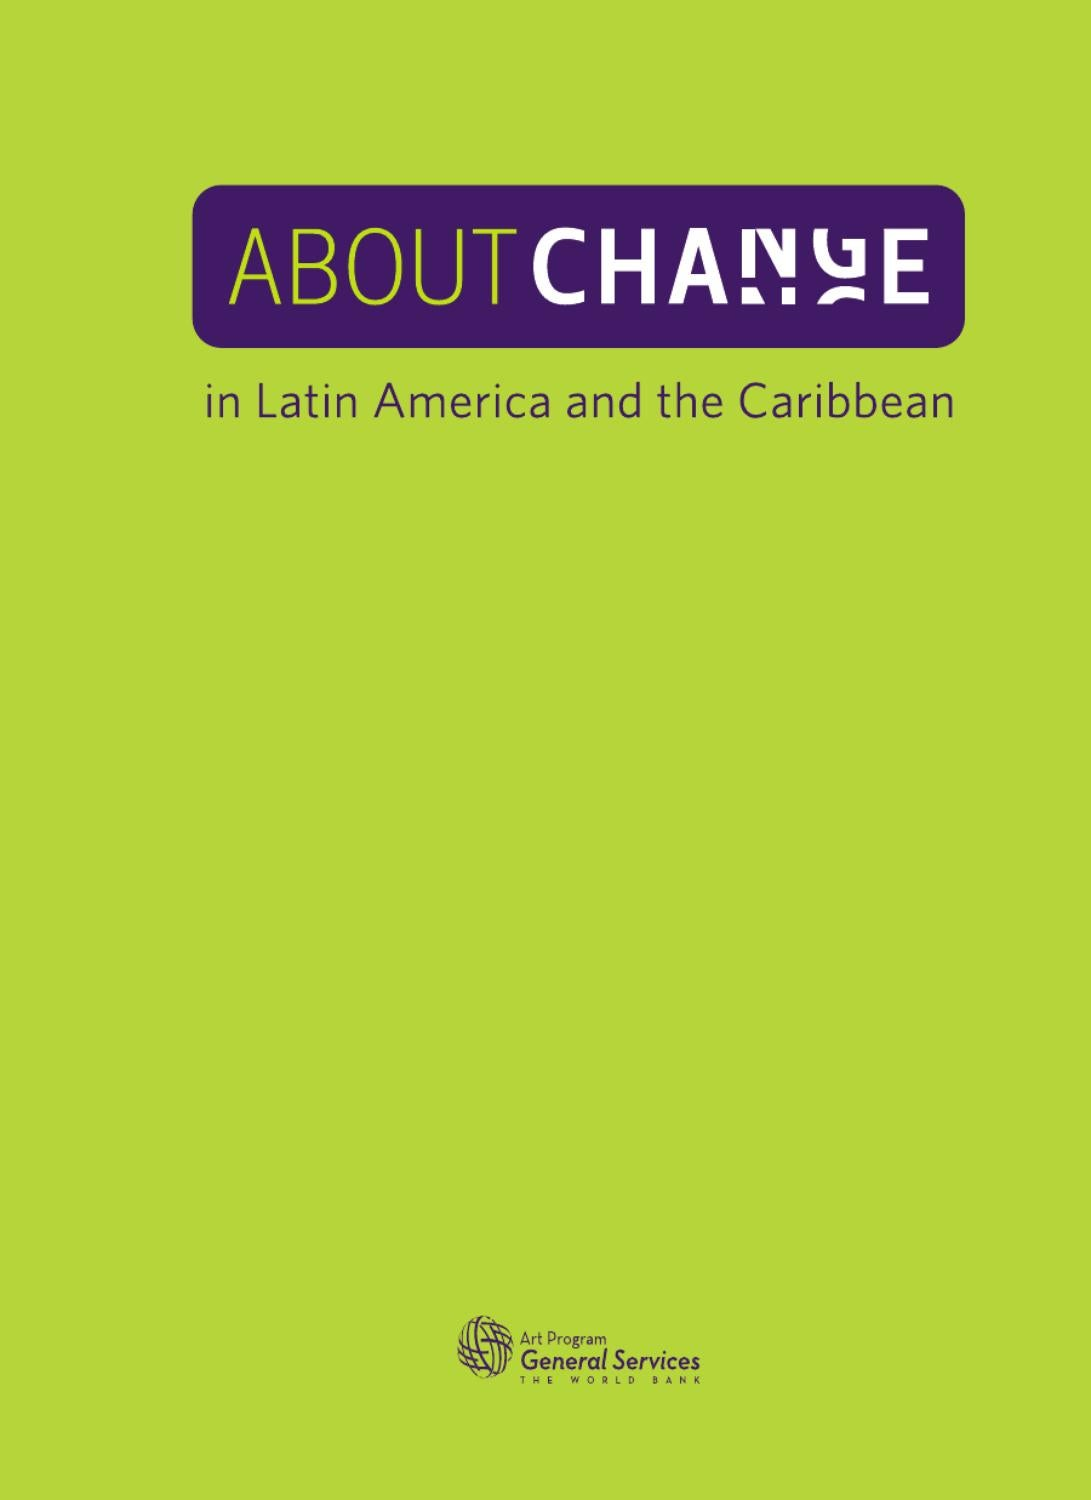 About Change in Latin America and the Caribbean. by mauricio ...